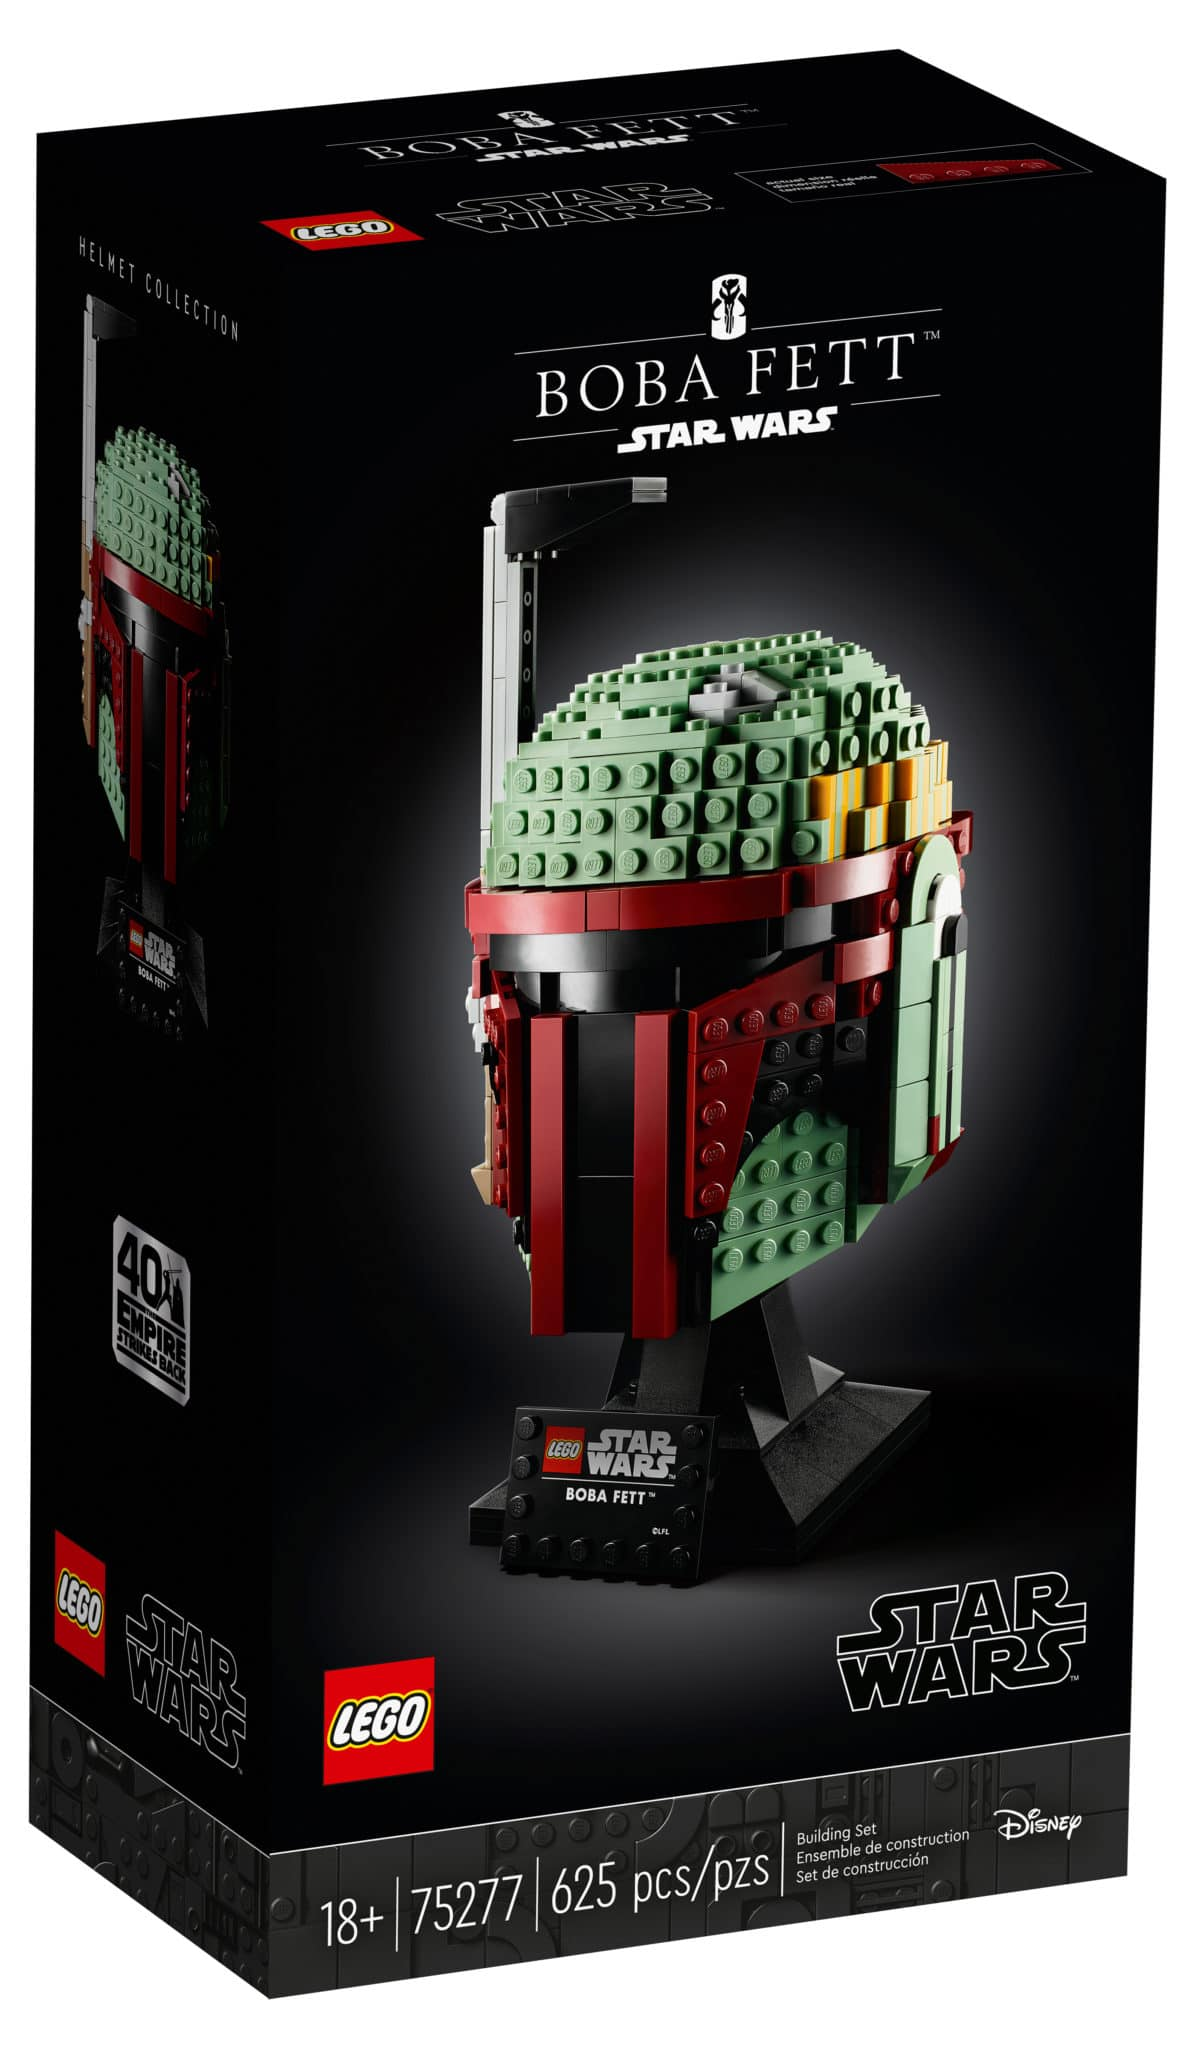 LEGO Star Wars 75277 Boba Fett Helm Box vorne